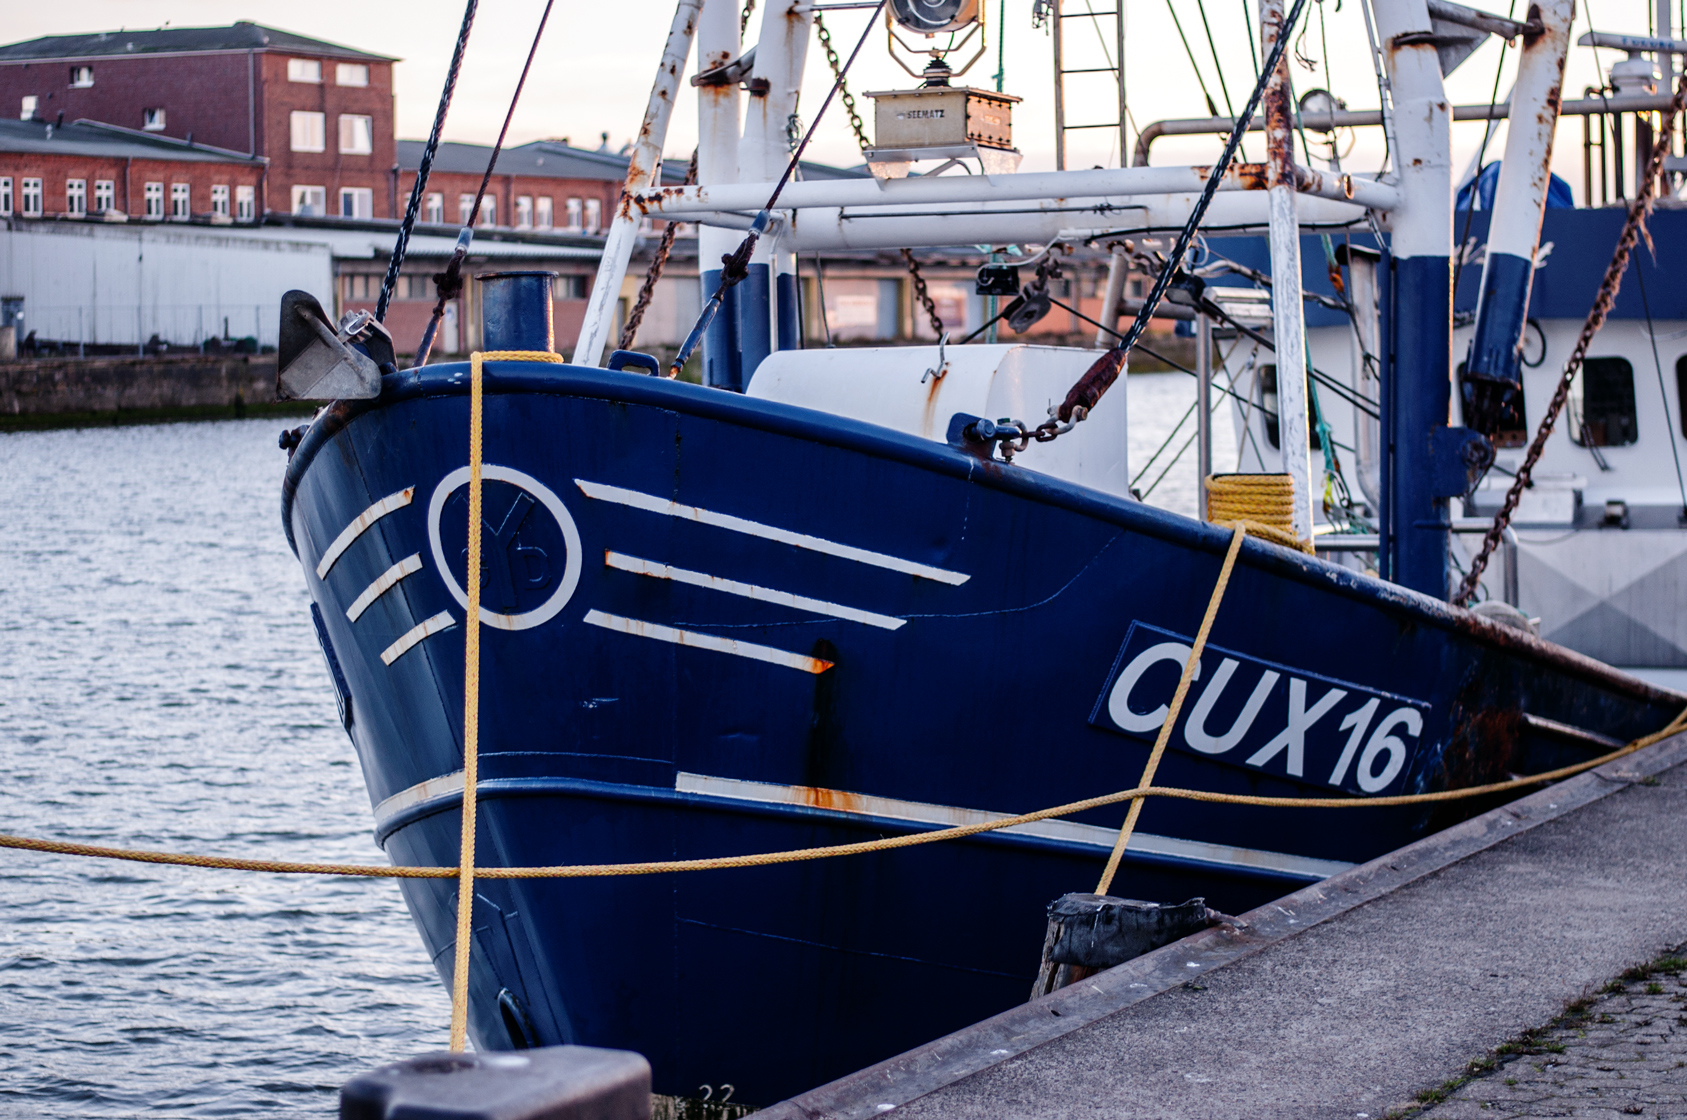 Boot Cuxhaven